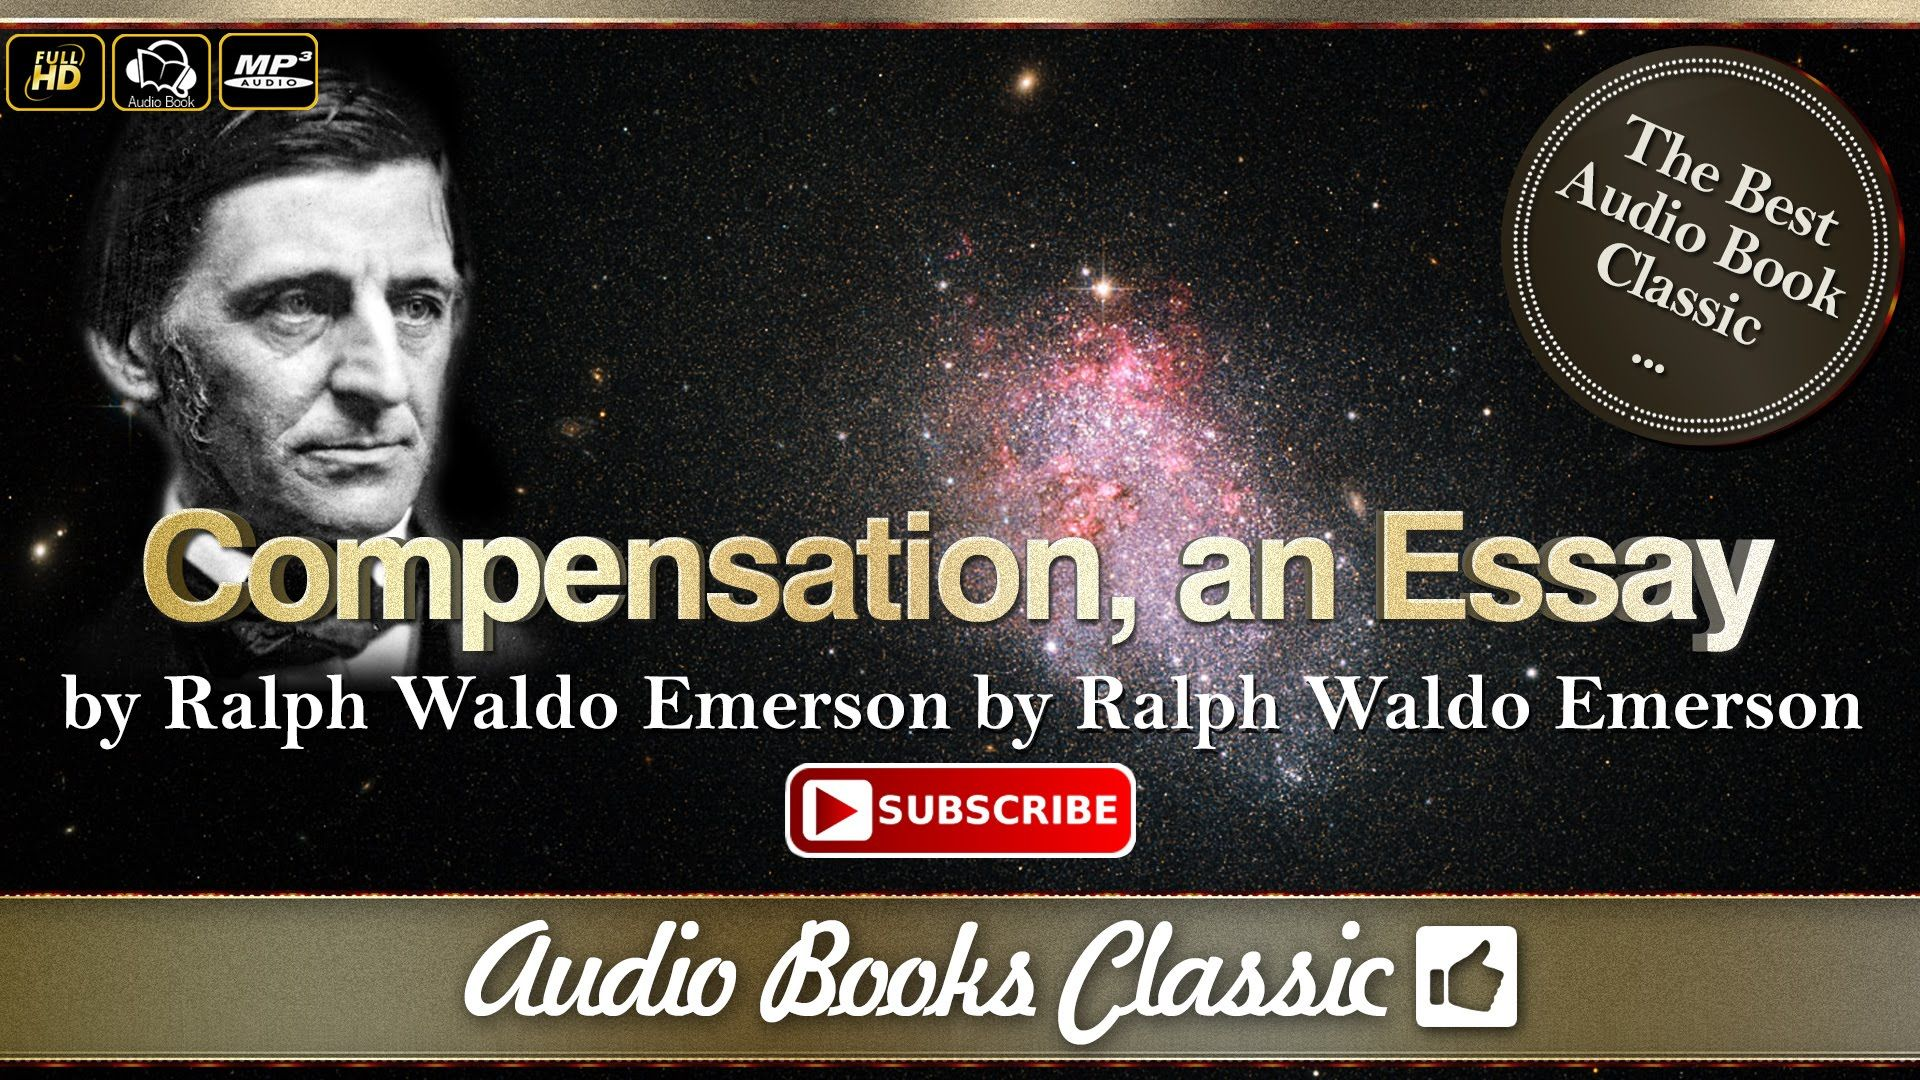 compensation an essay by ralph waldo emerson by ralph waldo  compensation an essay by ralph waldo emerson by ralph waldo emerson